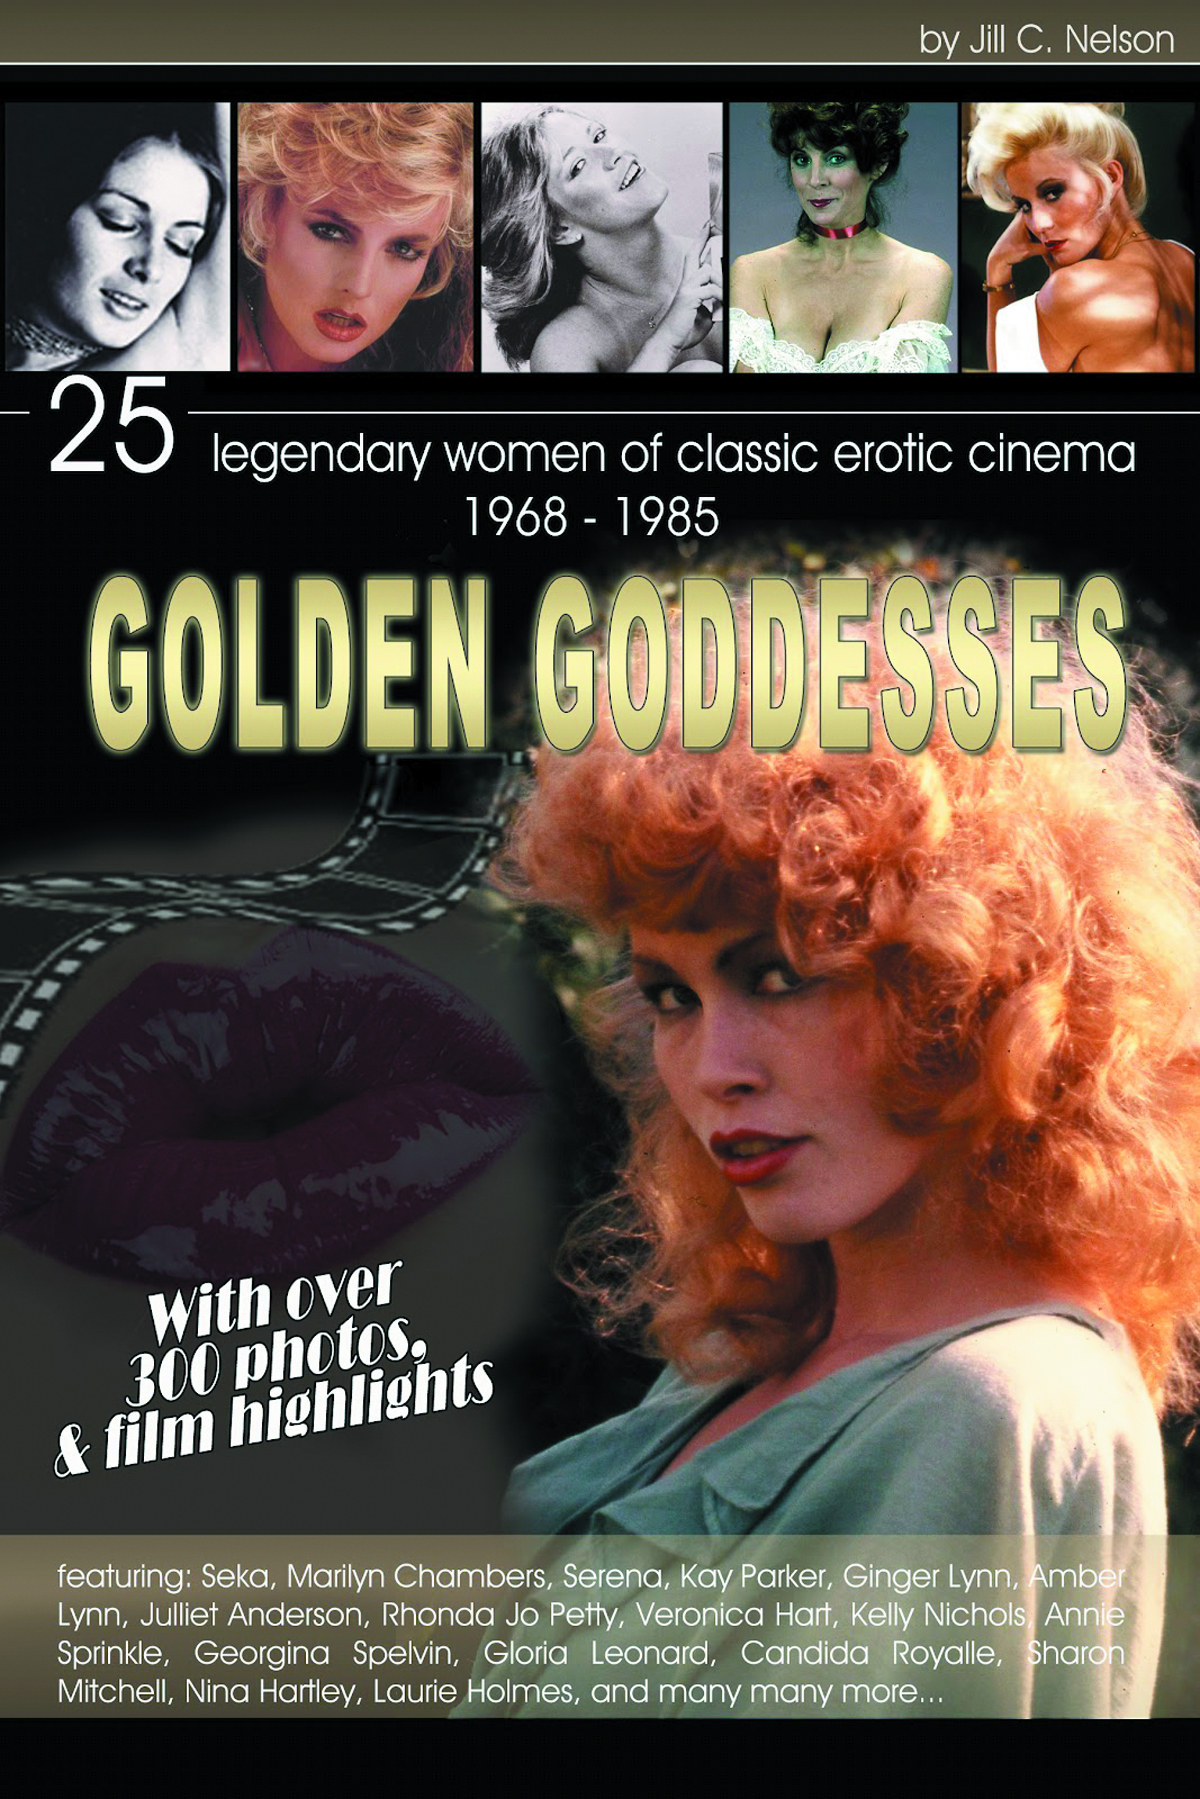 GOLDEN GODDESSES 25 LEGENDARY WOMEN OF CLASSIC EROTIC CINEMA